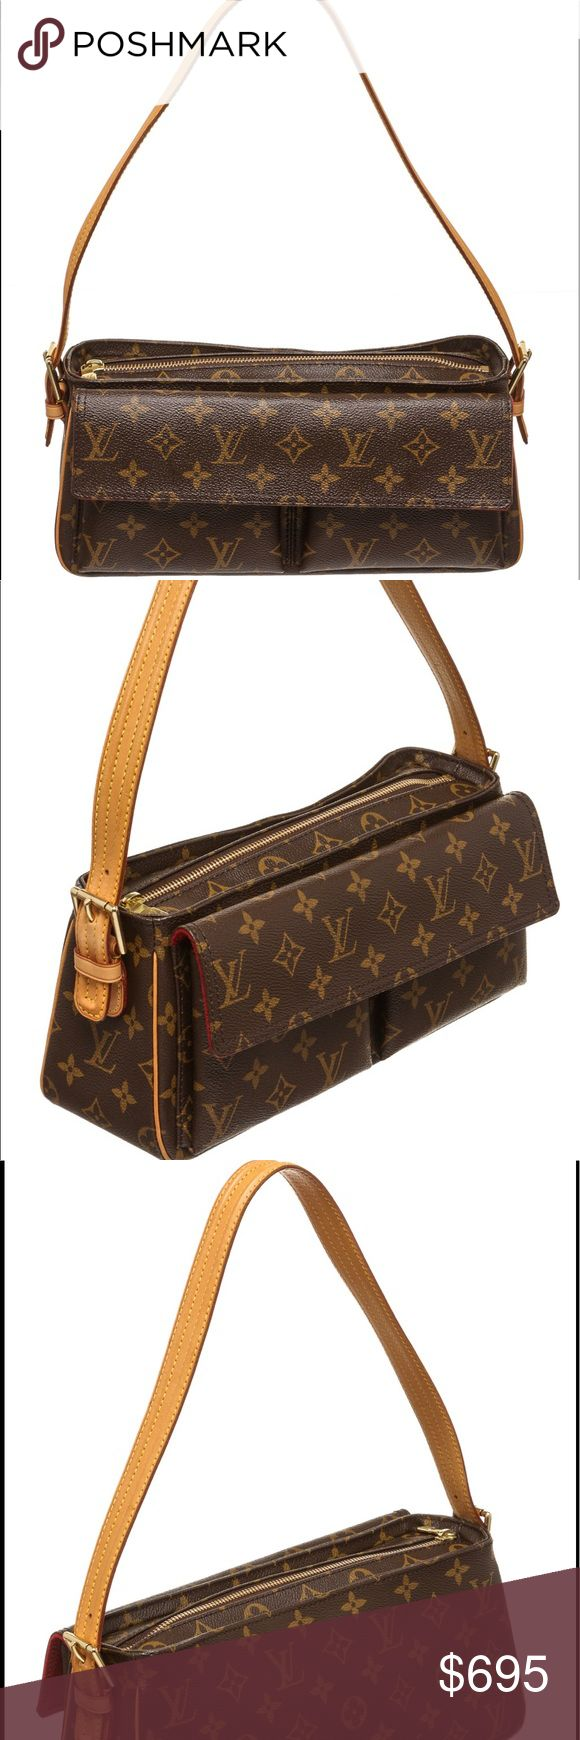 Louis Vuitton Monogram Cite MM Shoulder Bag Brown and tan monogram Louis Vuitton Cite MM with brass hardware, tan vachetta leather trim, dual flat shoulder straps, exterior zip pocket at front, brown canvas lining, three pockets at interior wall and two-way zip closures at top.  863 RC Louis Vuitton Bags Shoulder Bags